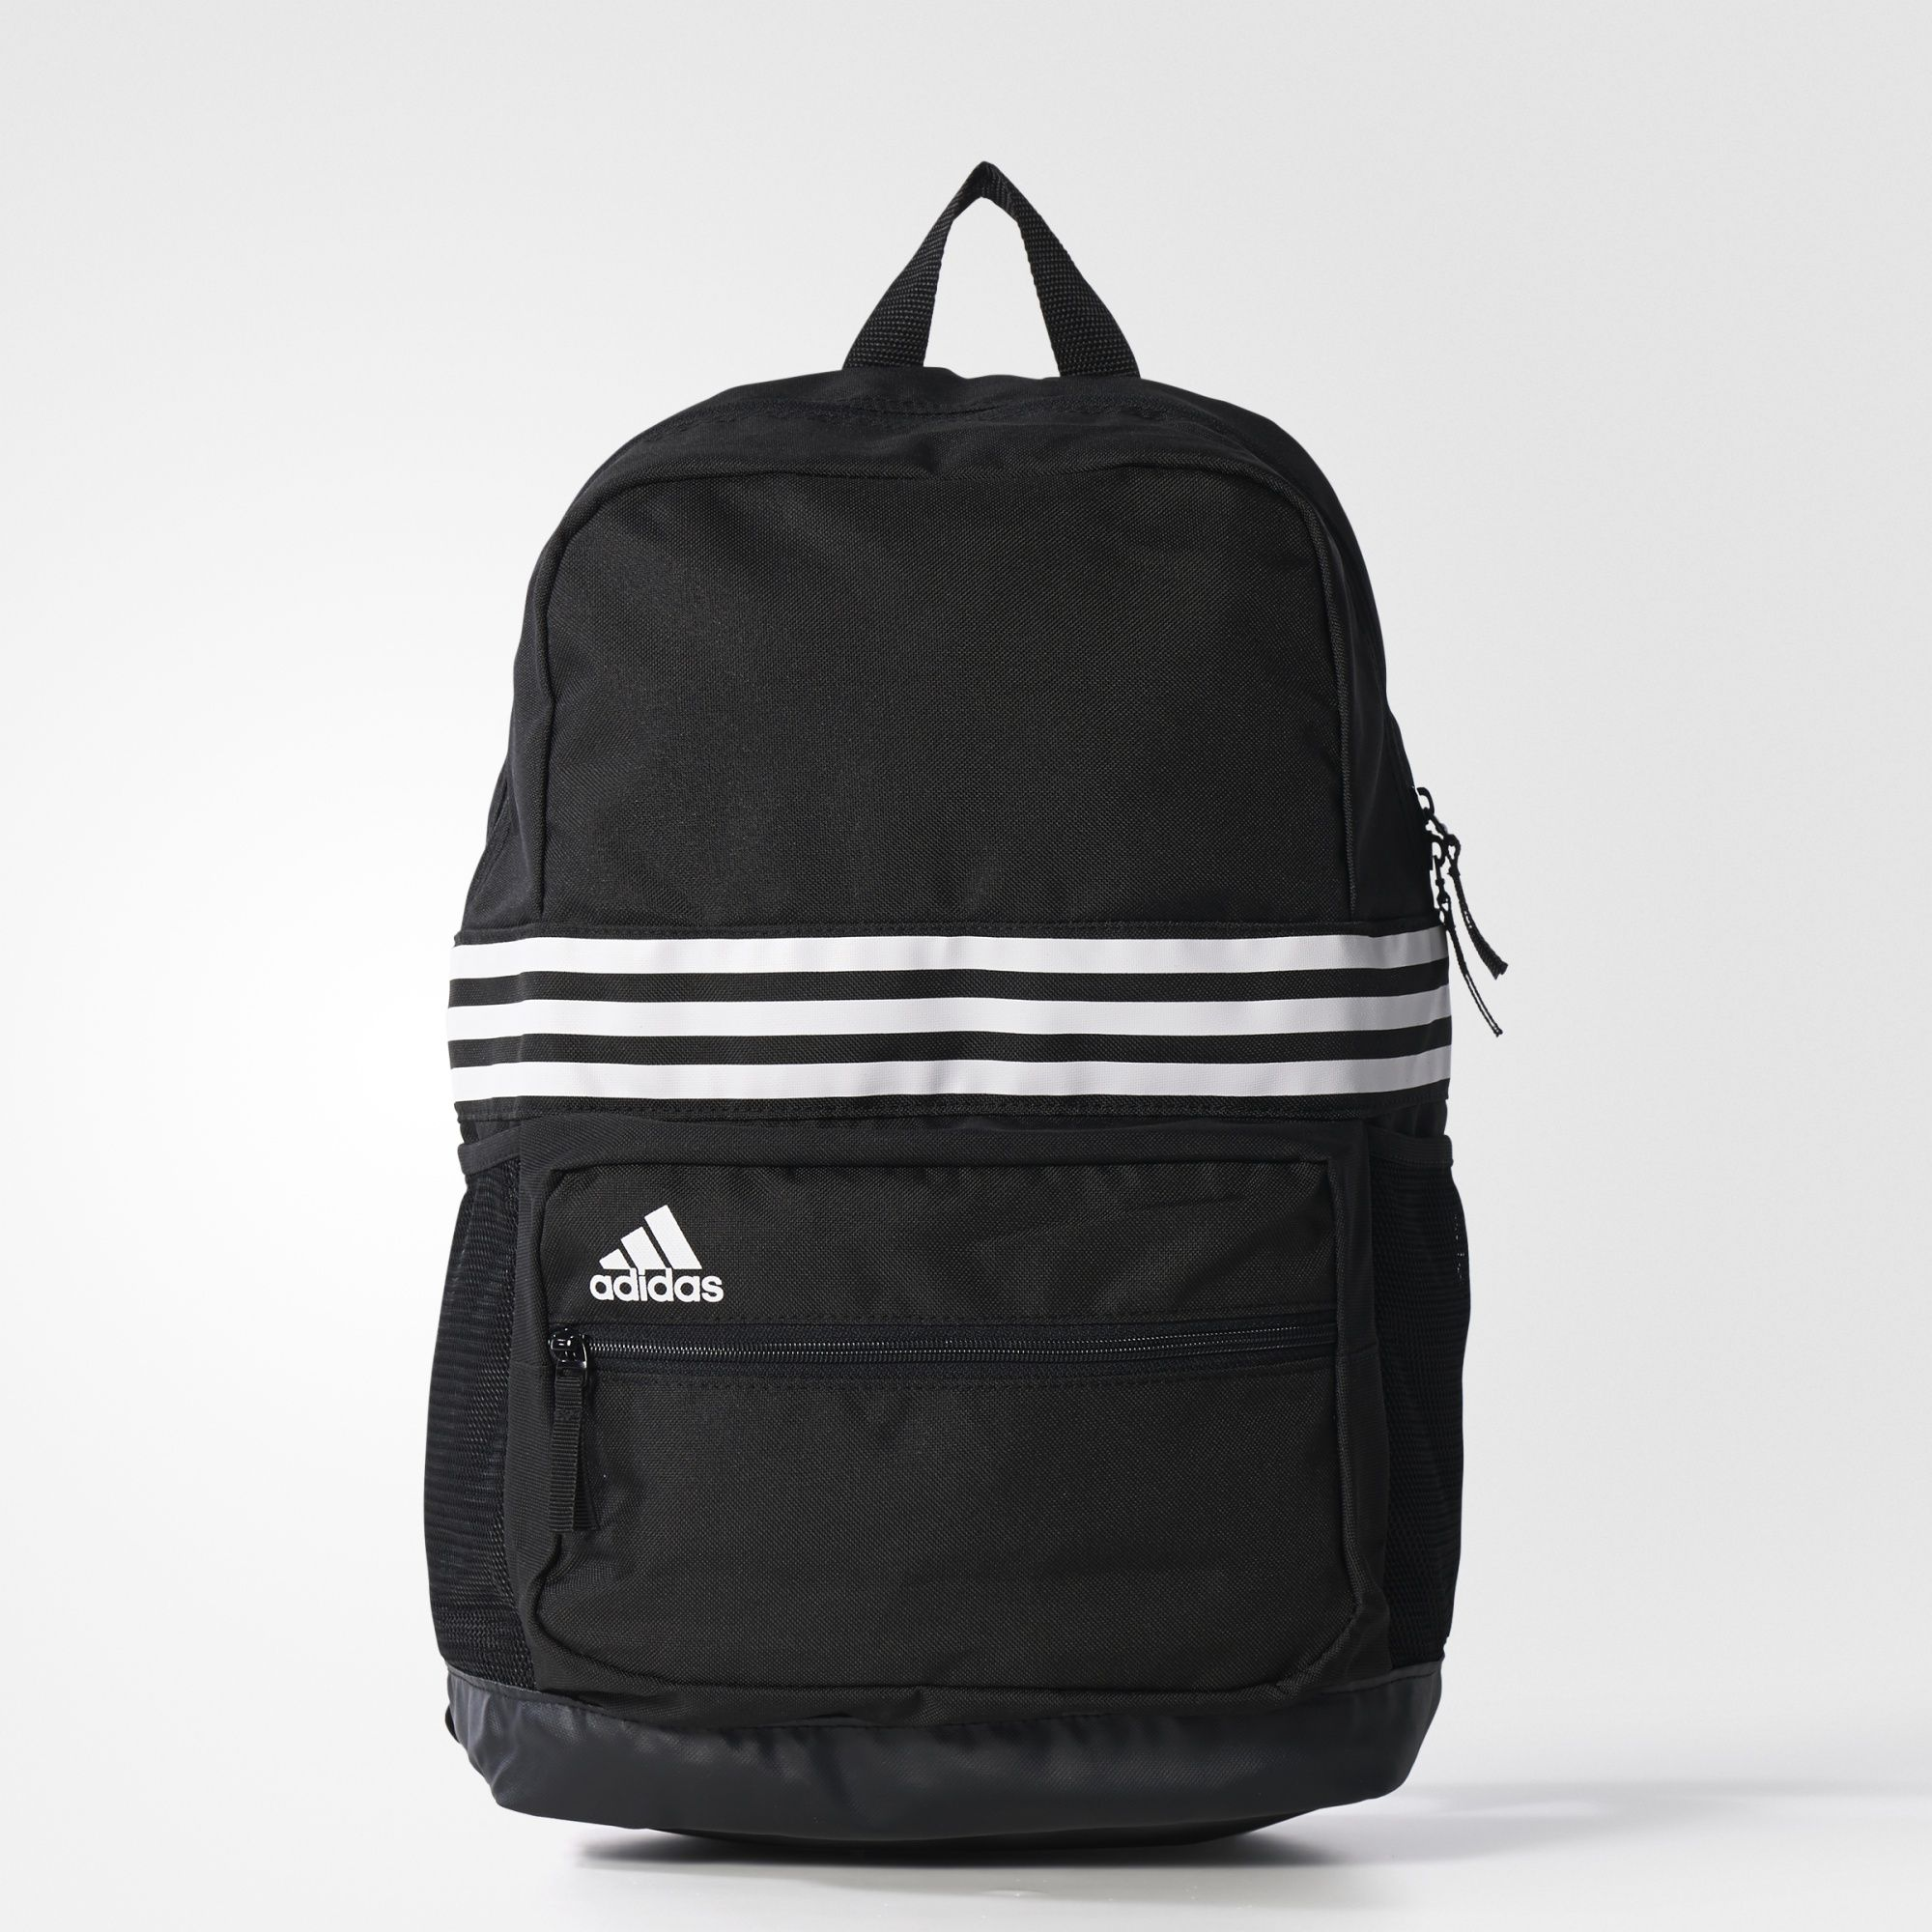 adidas 3 stripes sports backpack medium black adidas uk